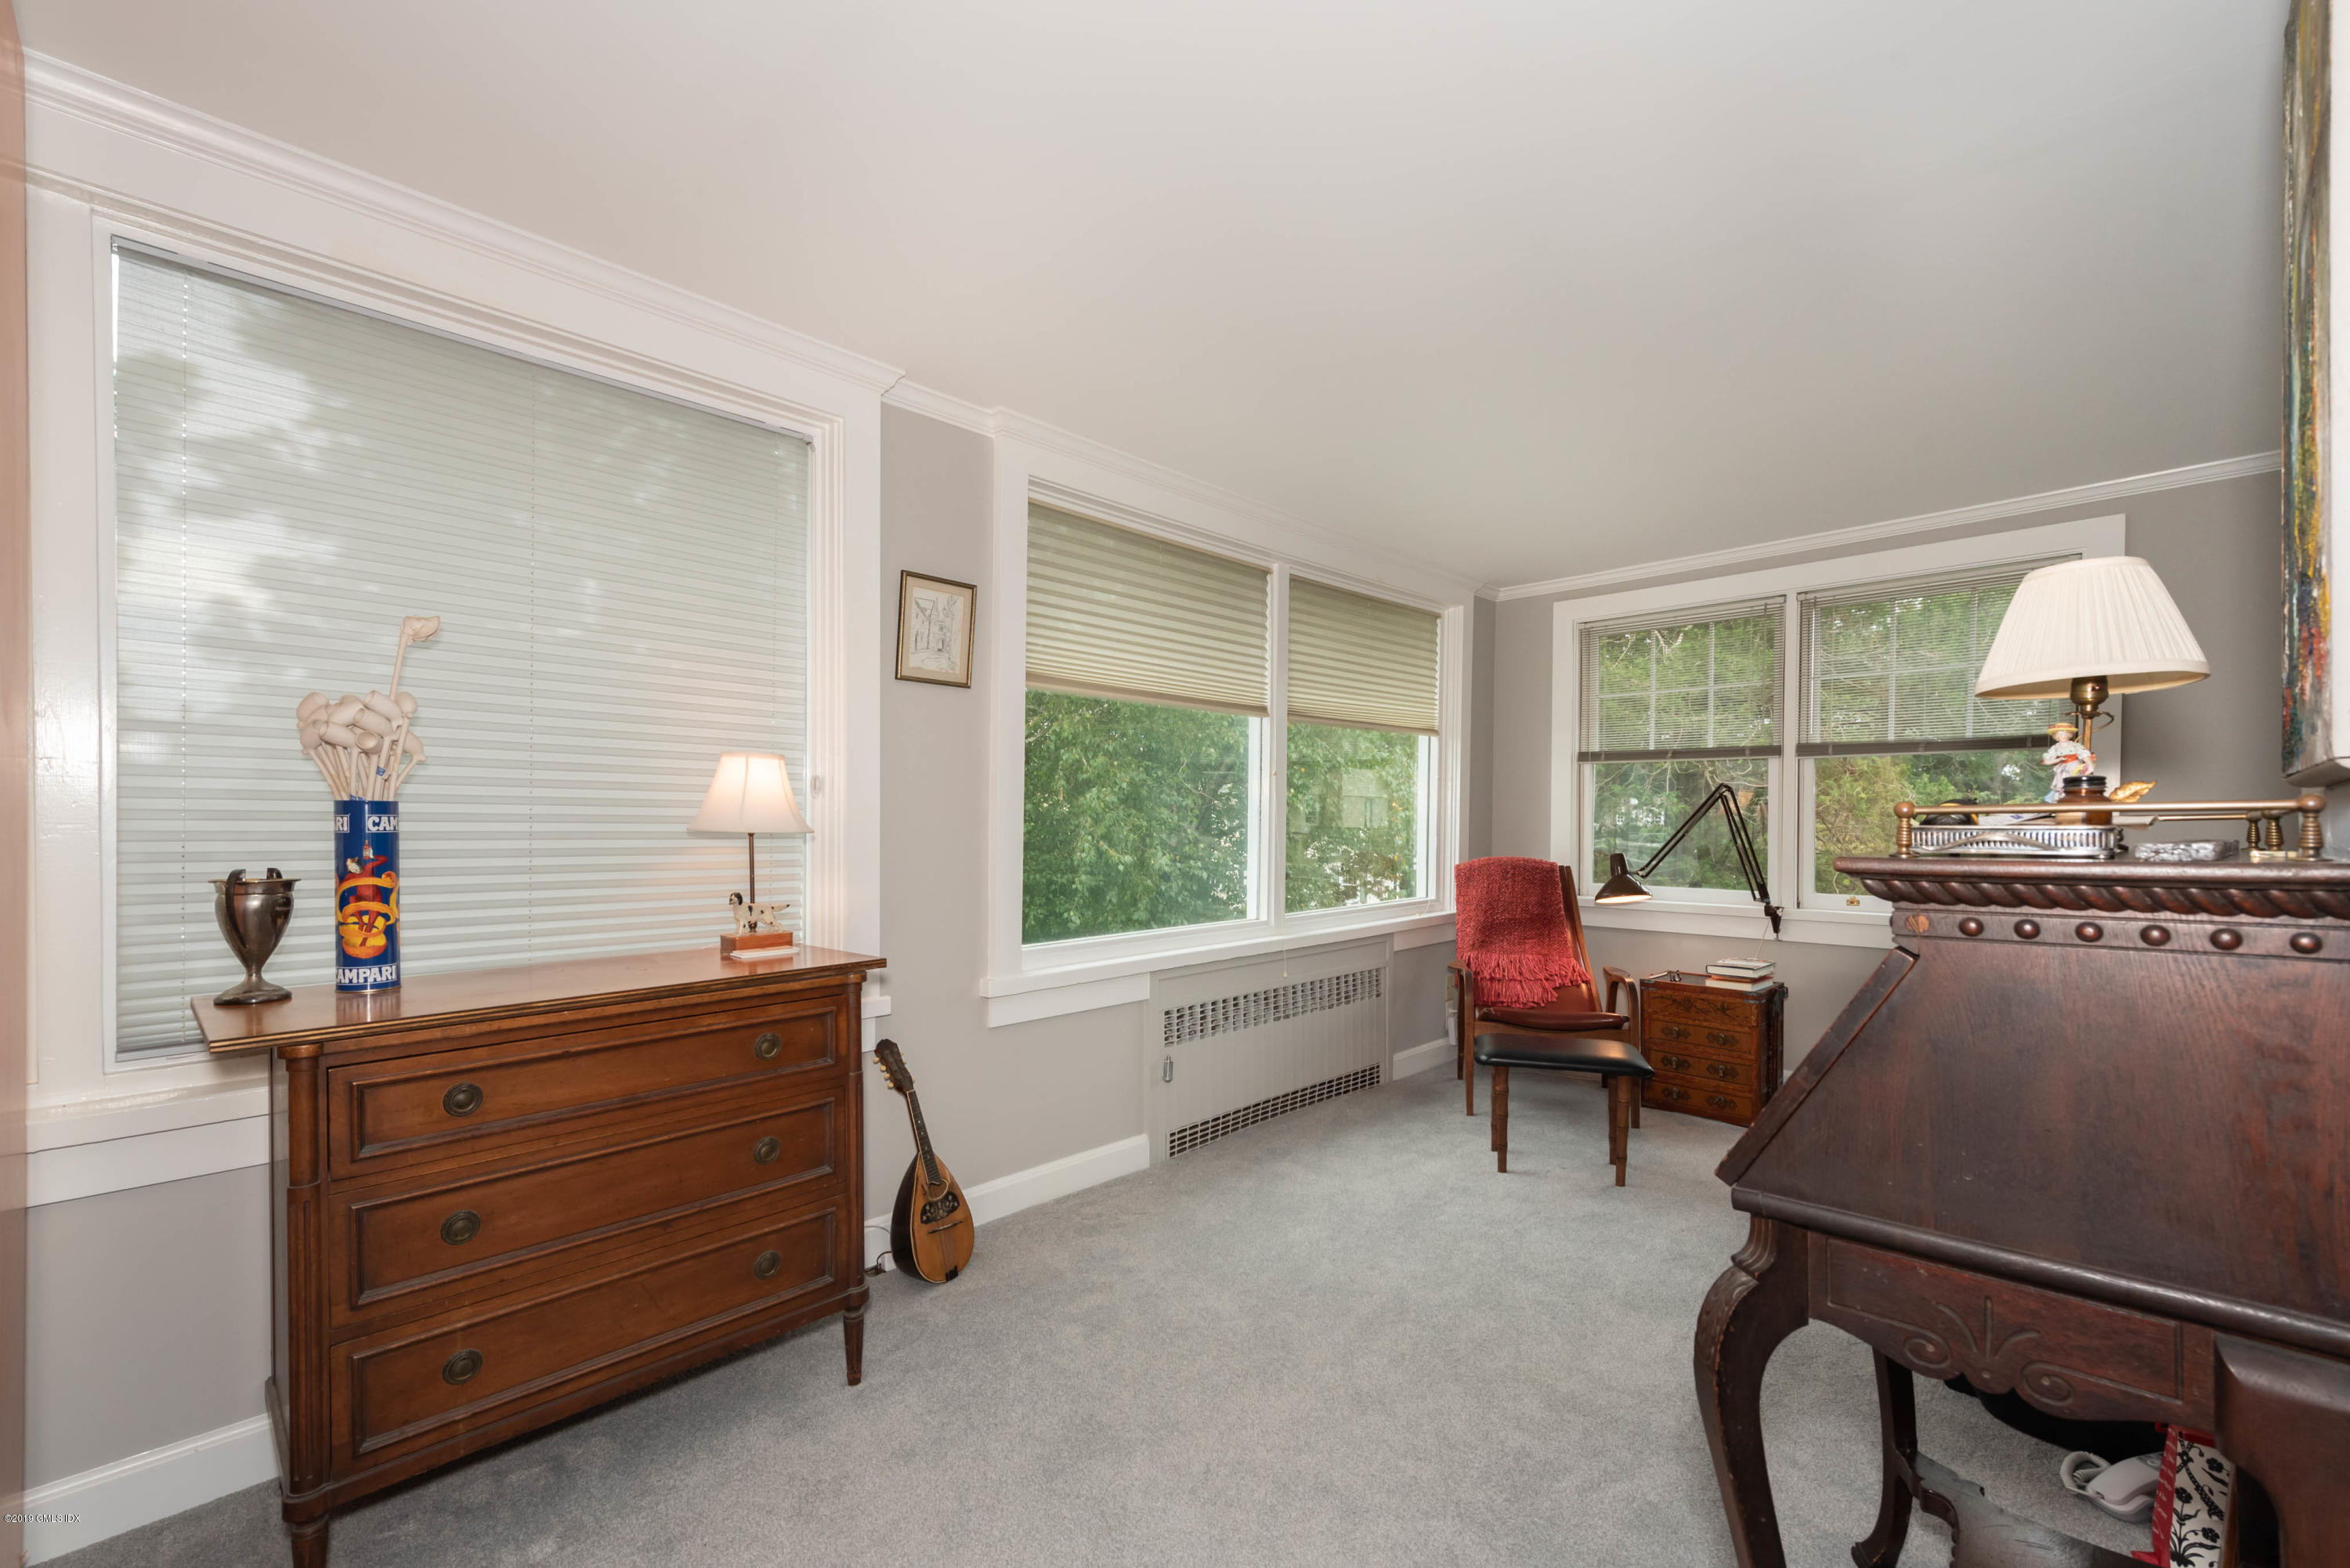 14 Cresthill Place, Stamford, CT 06902